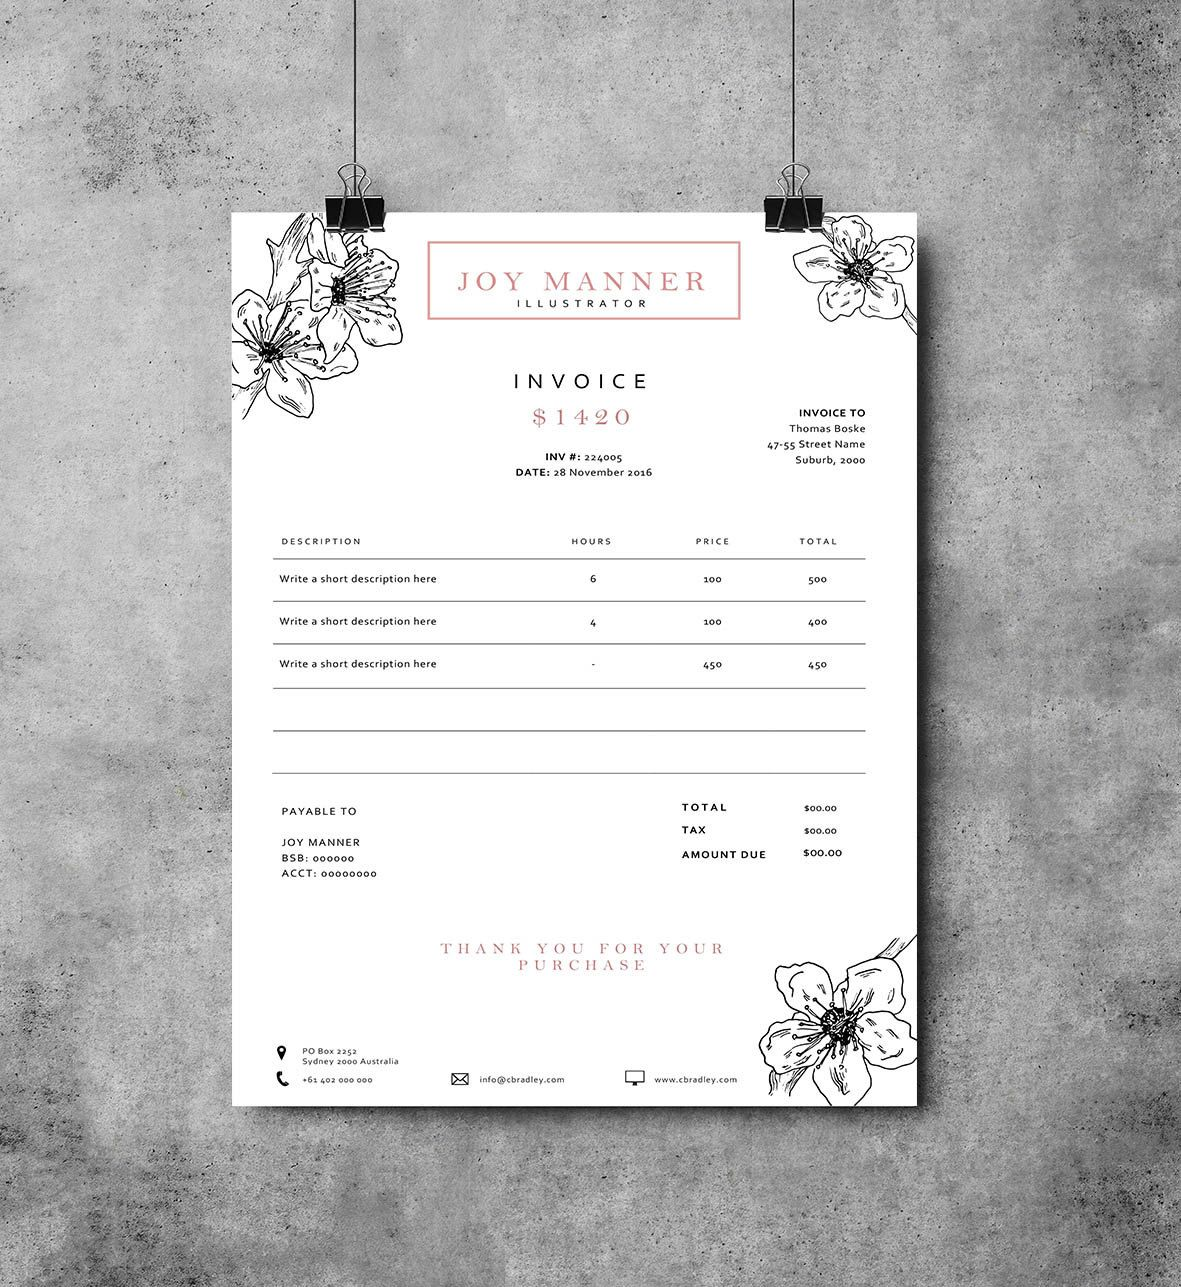 invoice template | receipt template | invoice instant download, Invoice examples